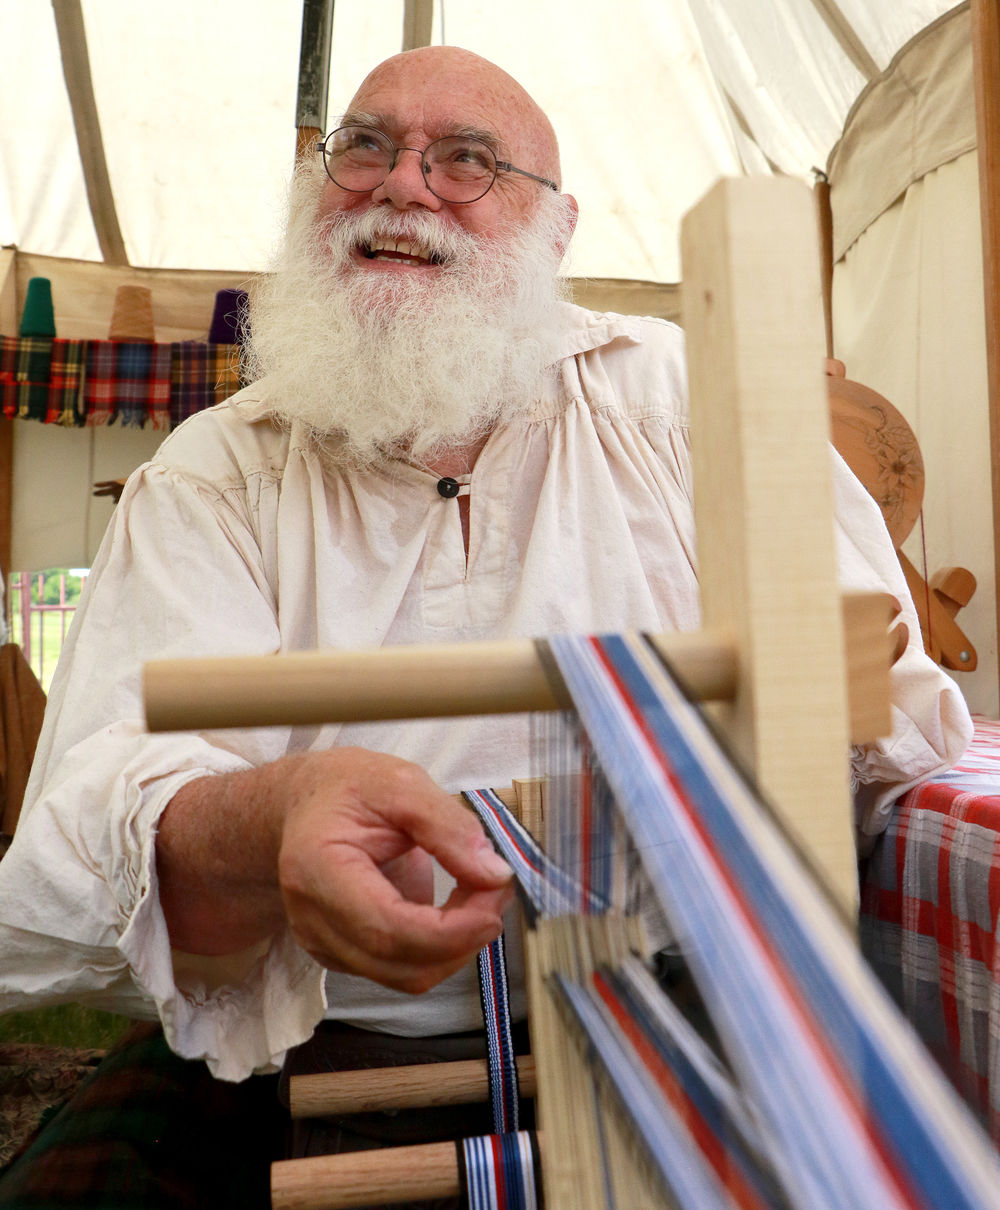 Annual festival brings Celtic heritage to life